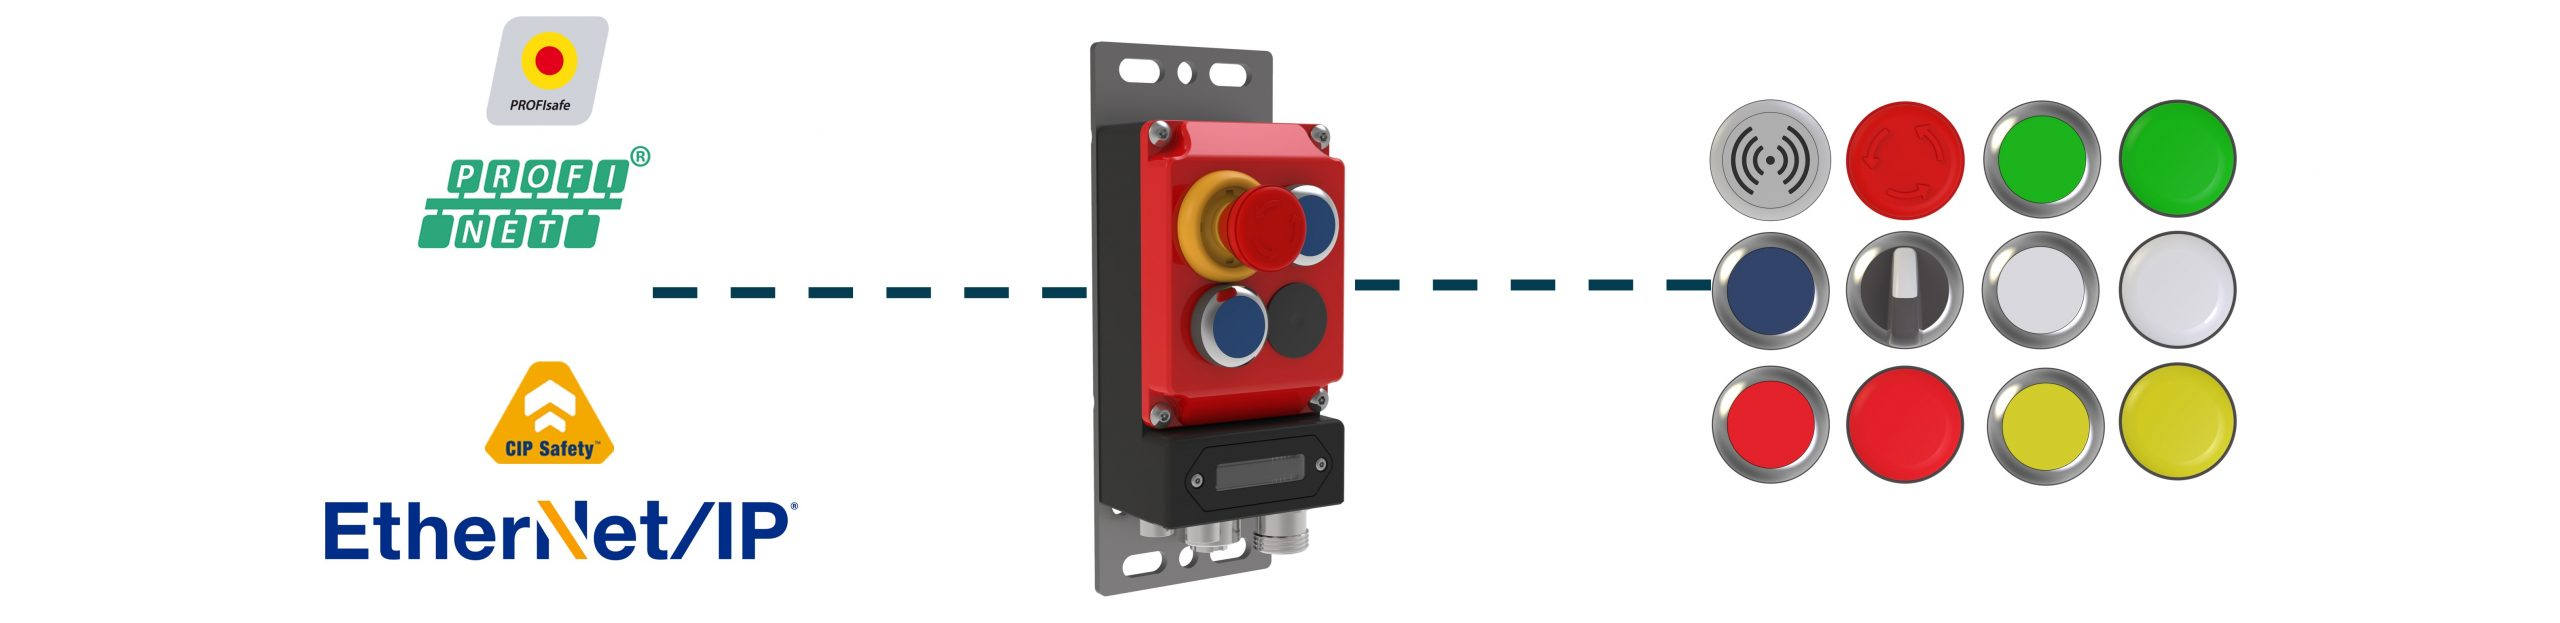 Networked Push Button Controls